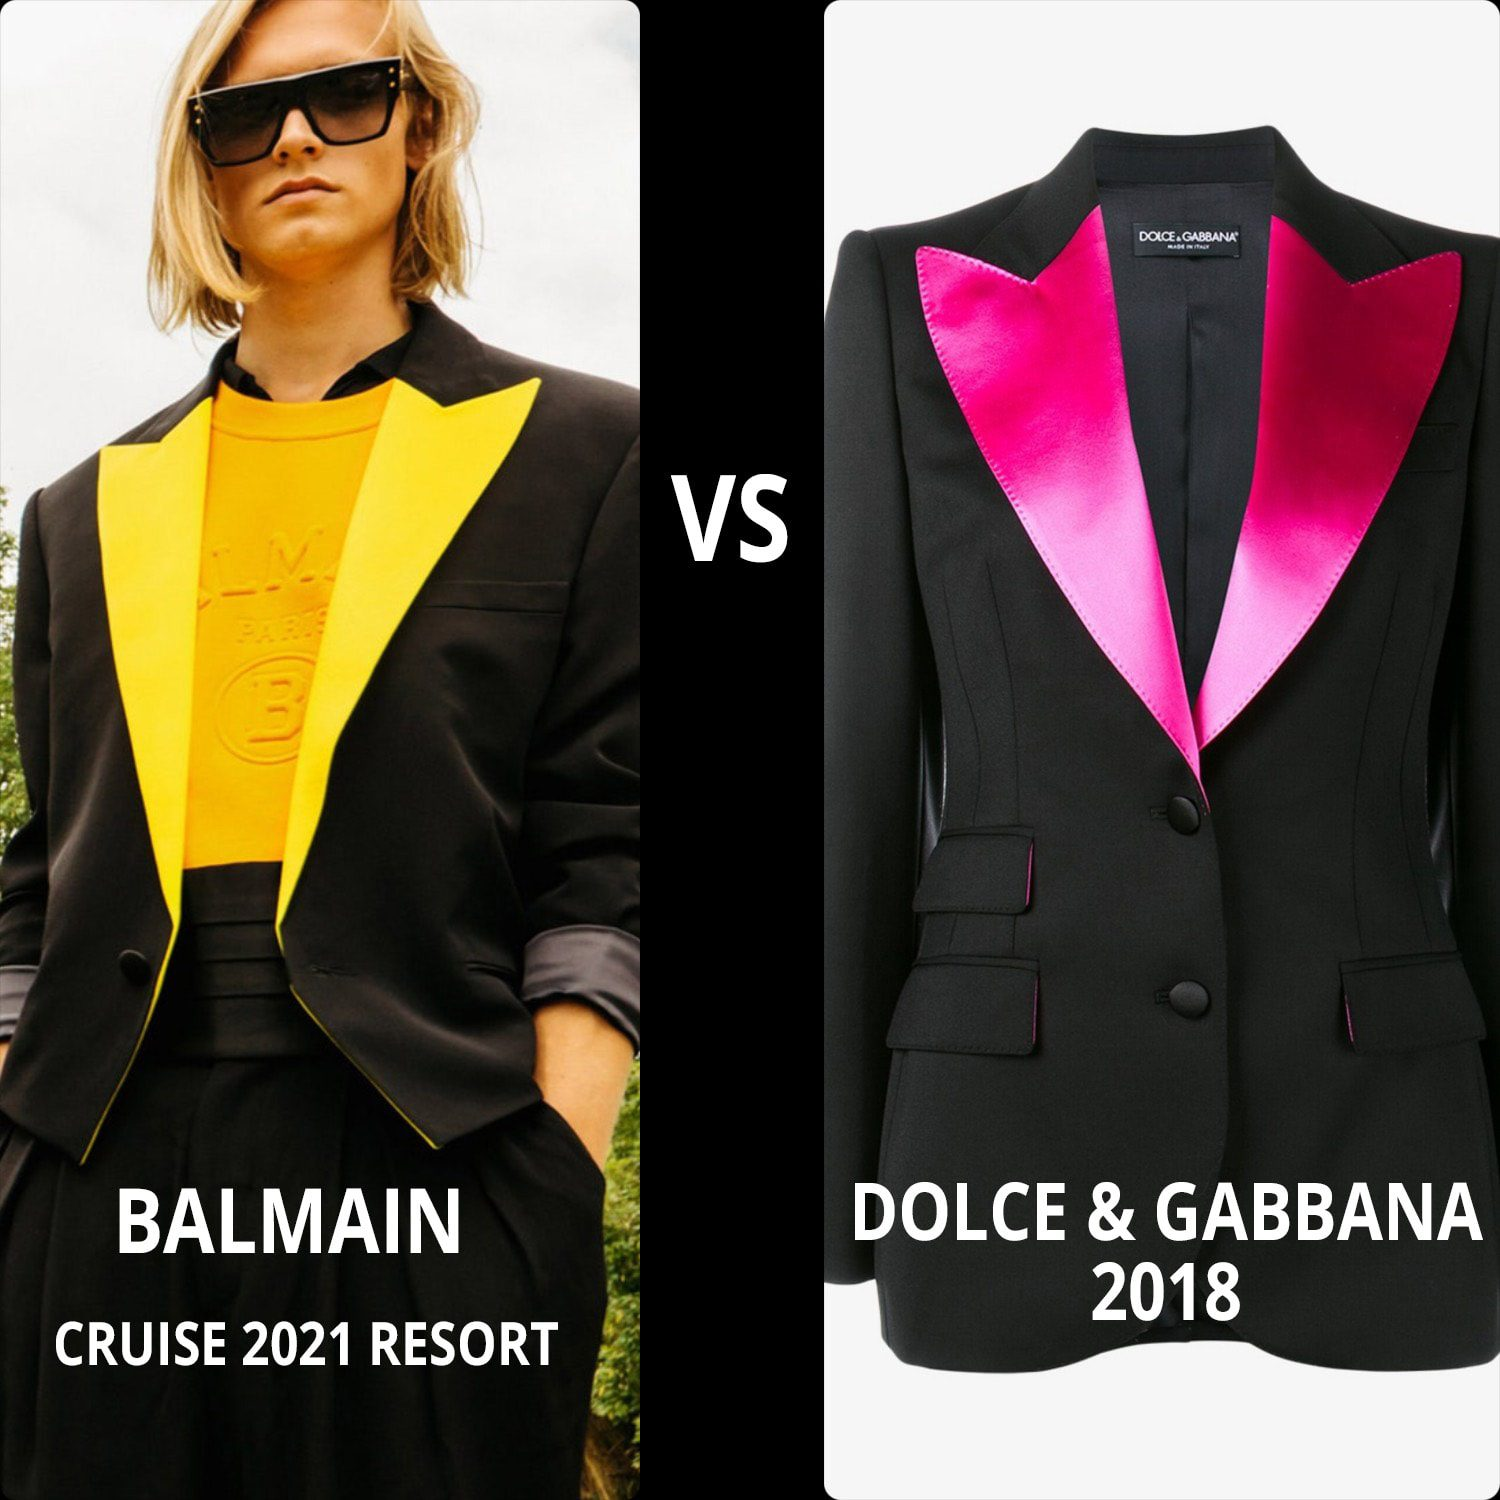 Balmain Cruise 2021 Resort vs DOLCE GABBANA 2018